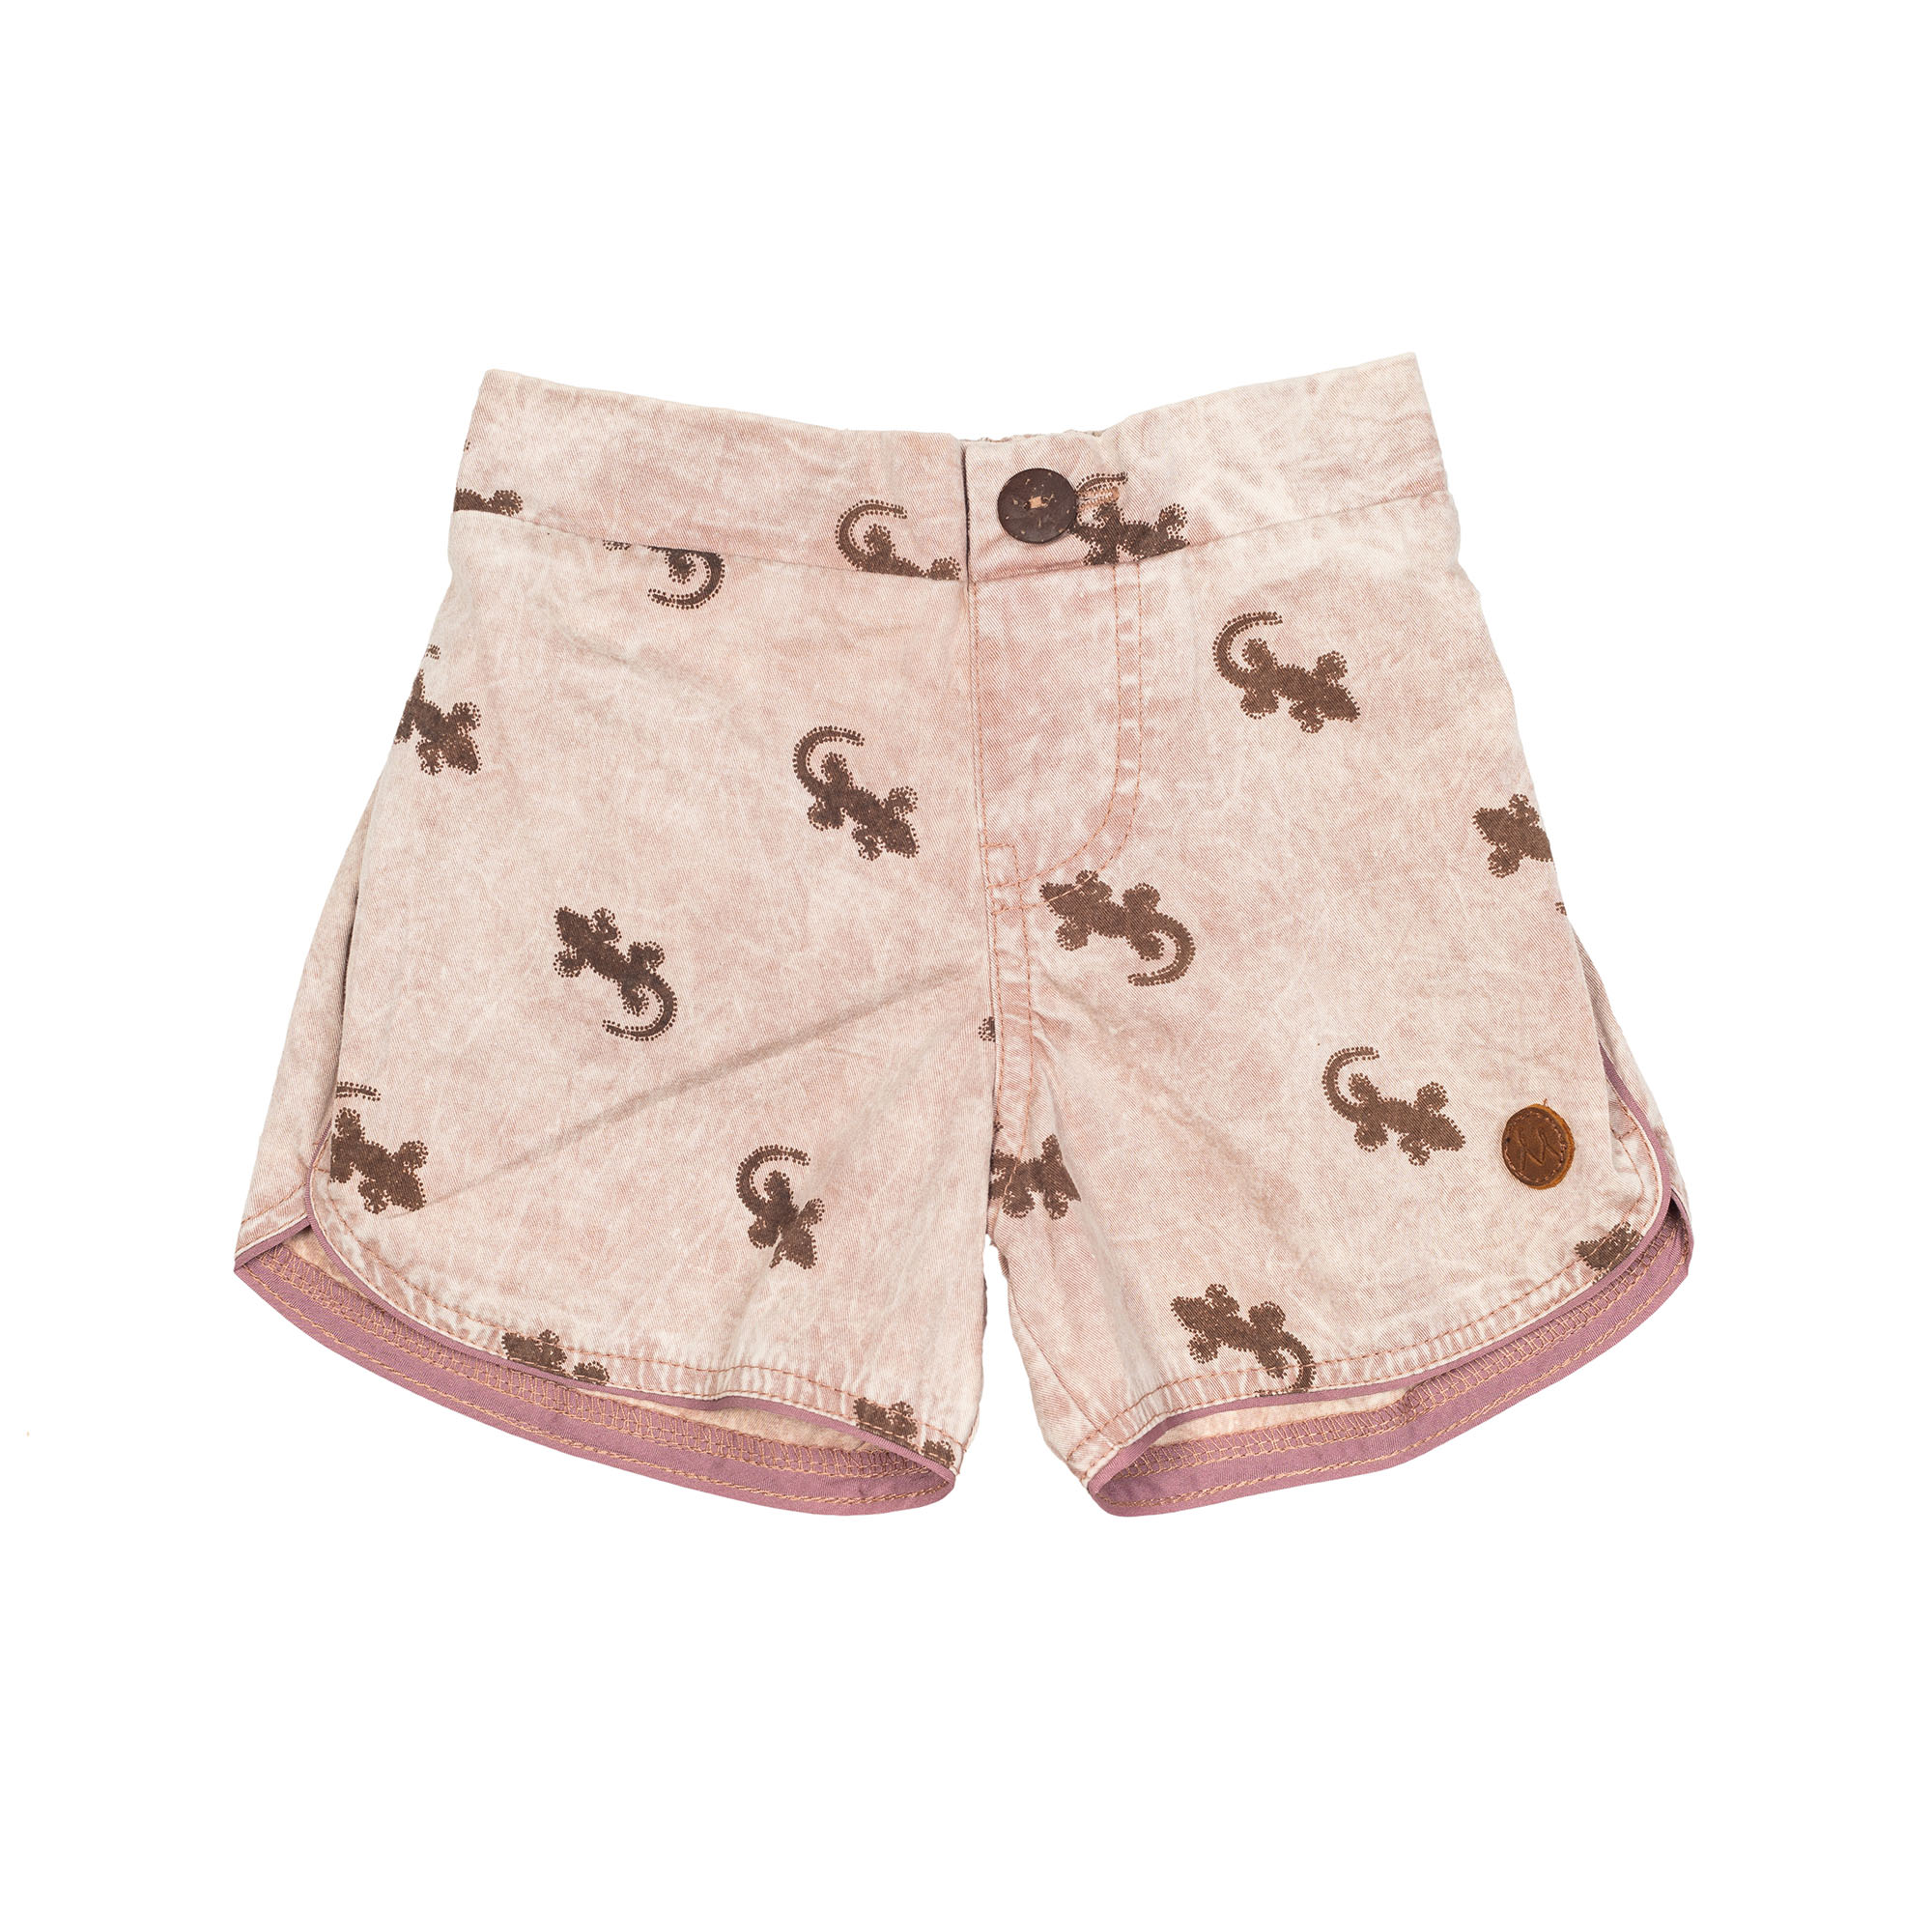 Children of the Tribe Tawny Gecko Boys Shorts ** Pre Sale